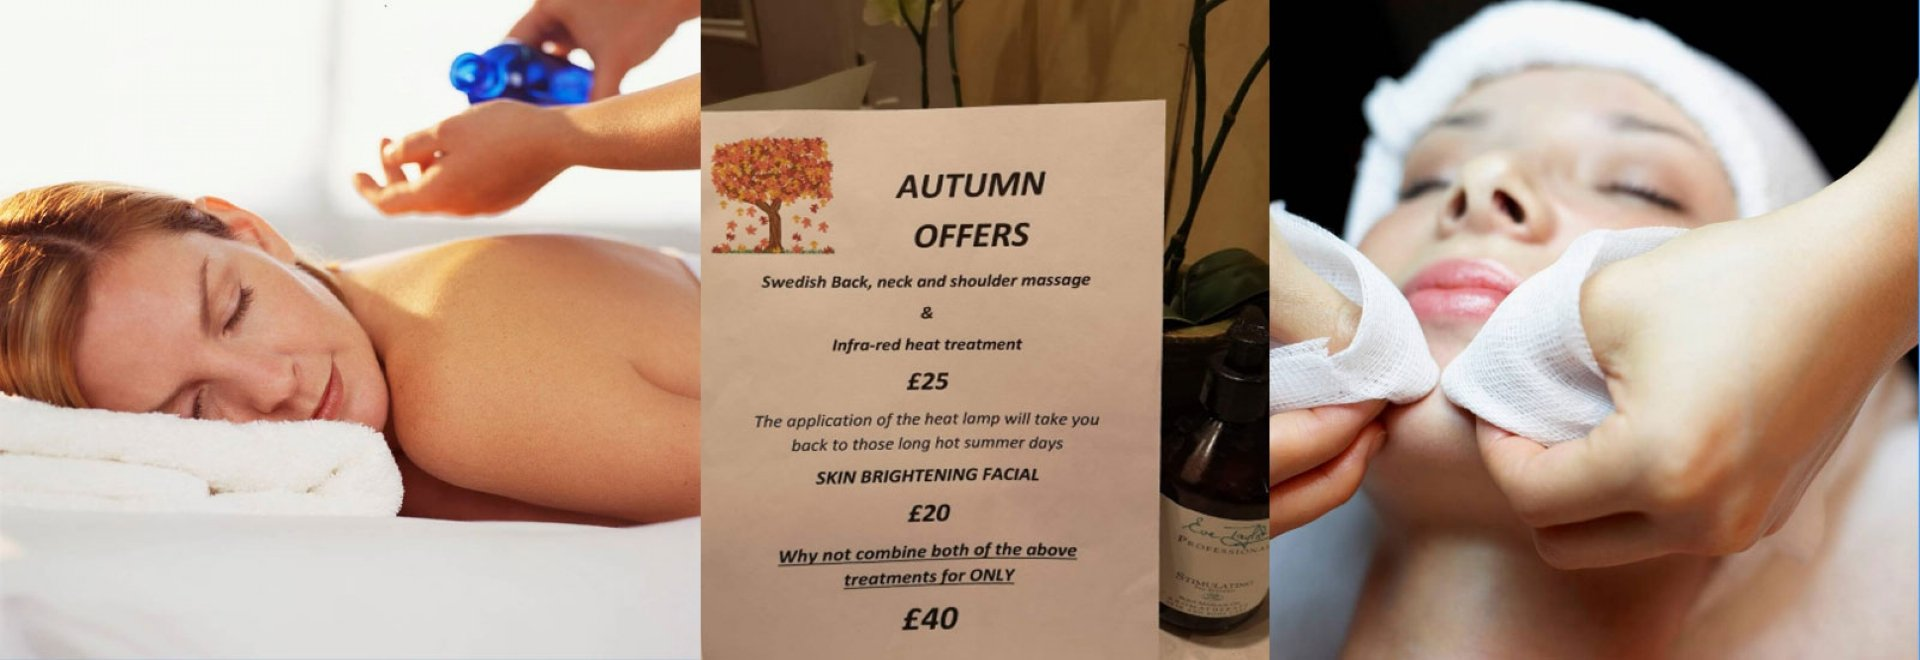 leisure beauty header centre text space autumn offer